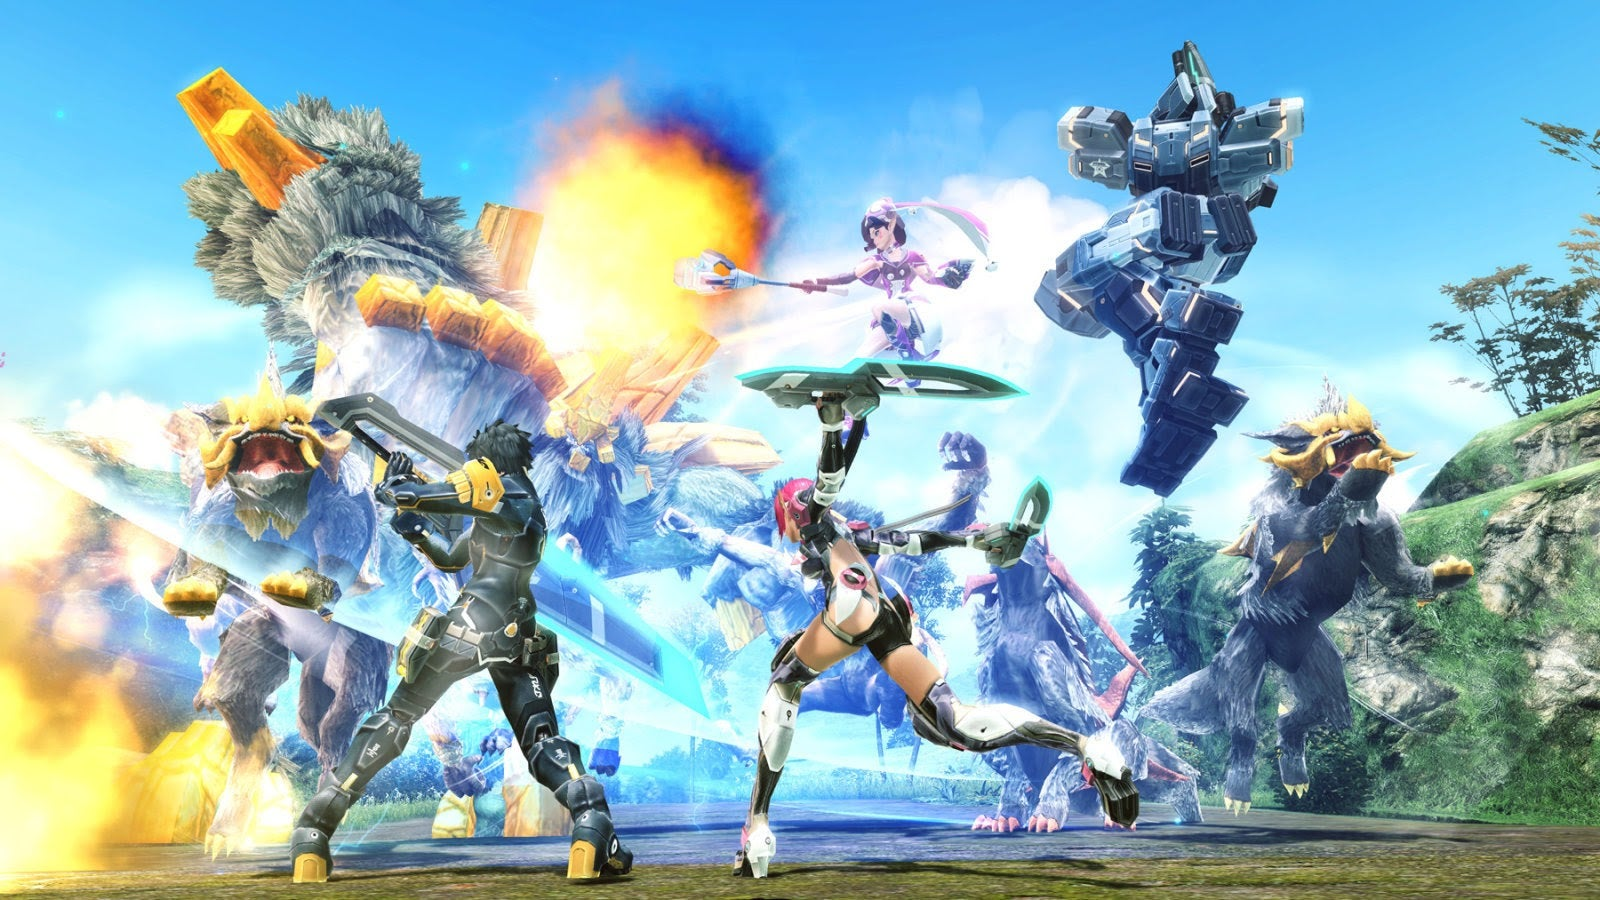 Phantasy Star Online 2 Shows Its Age, But It's Still Great